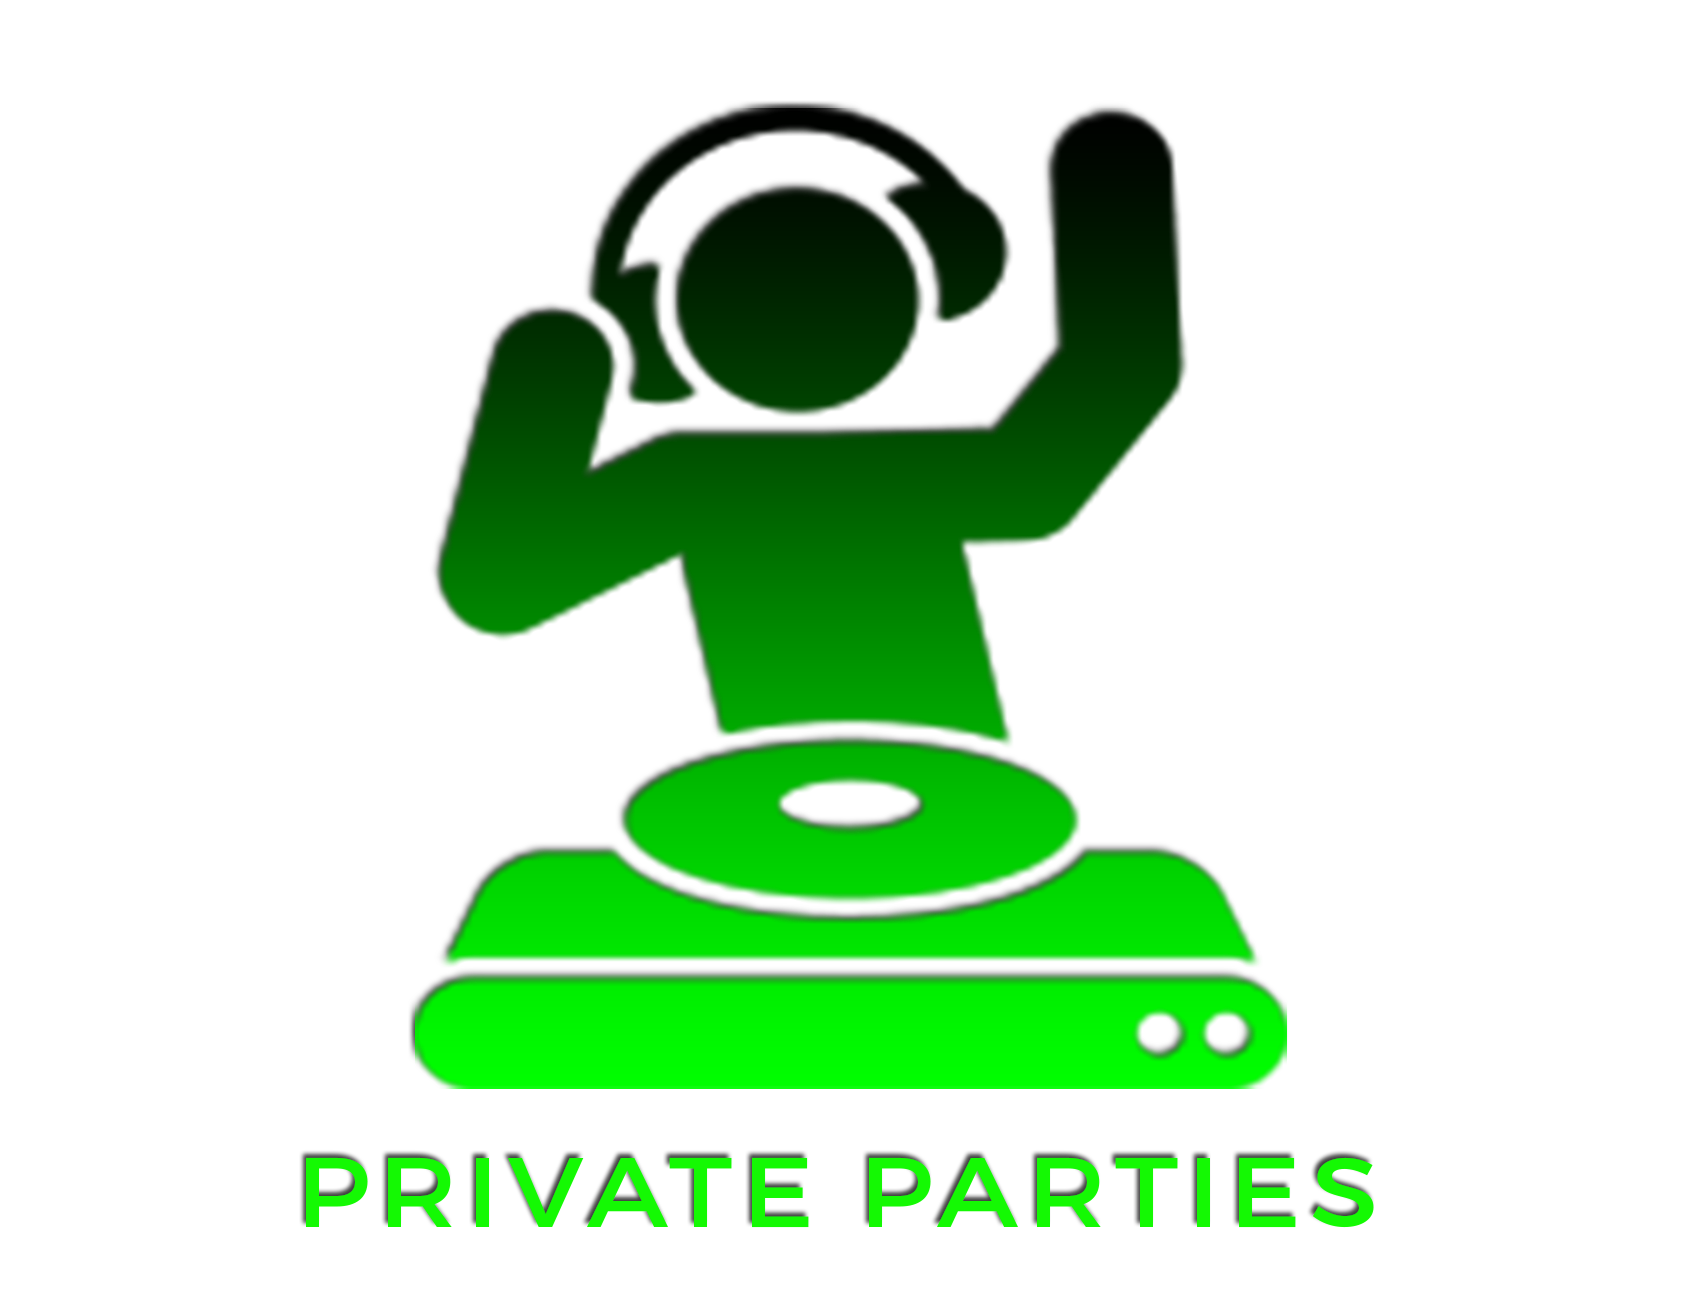 RFE private parties.png